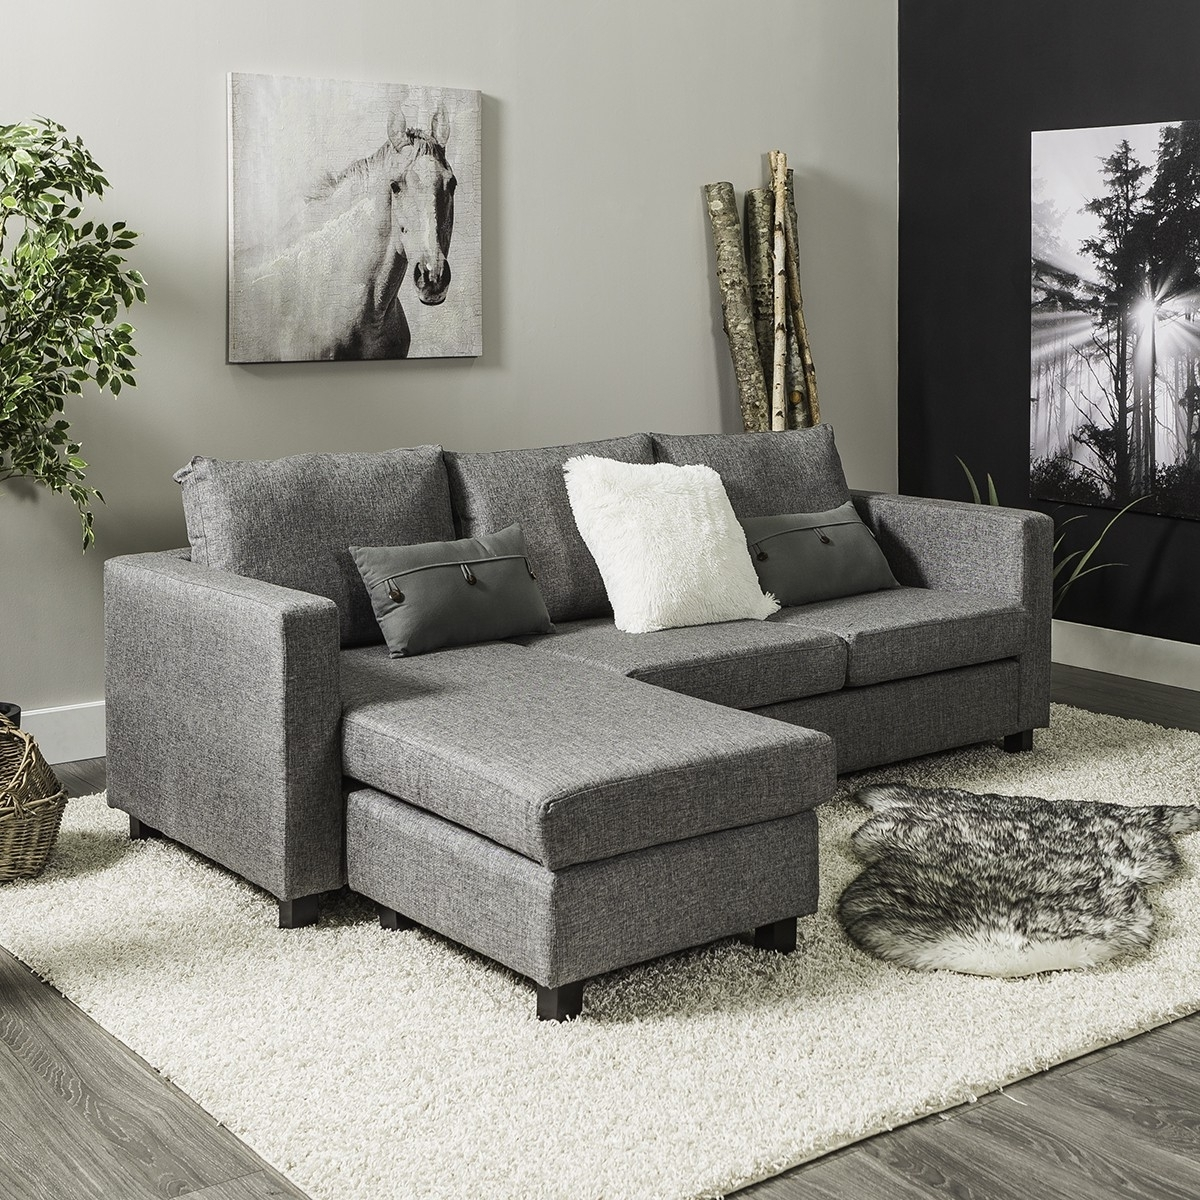 Well Known Jysk Sectional Sofas Regarding Casa Corner Sofa (Grey) (View 18 of 20)